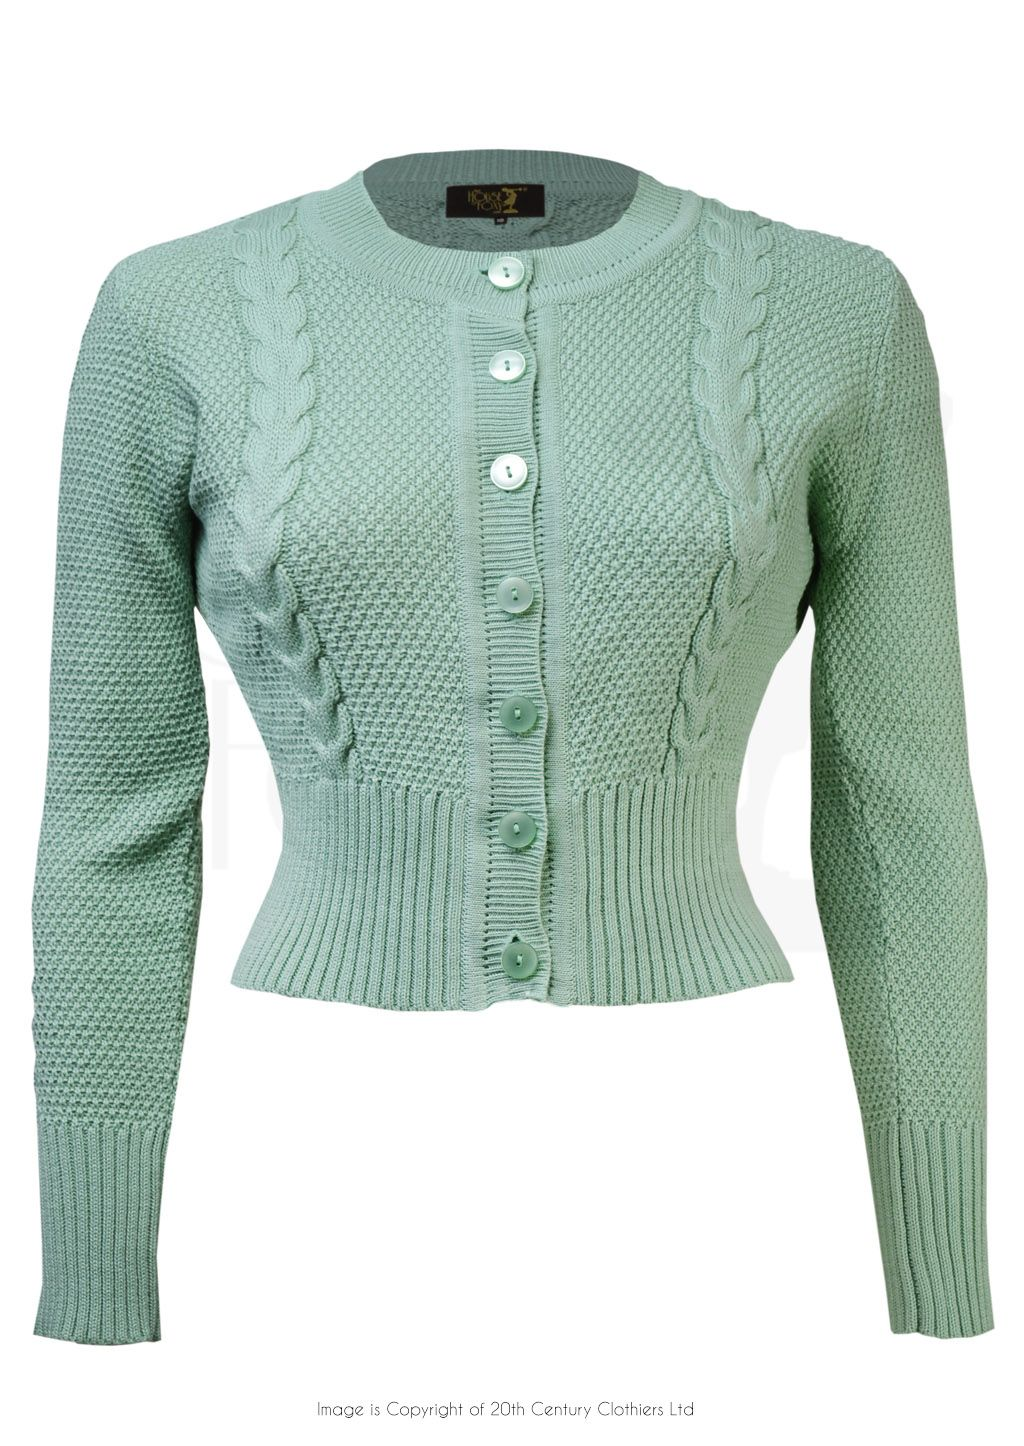 Vintage Style Cable Knit Crop Cardigan In Seafoam Green Vintage Fashion Cropped Cardigan Knit Dress Pattern